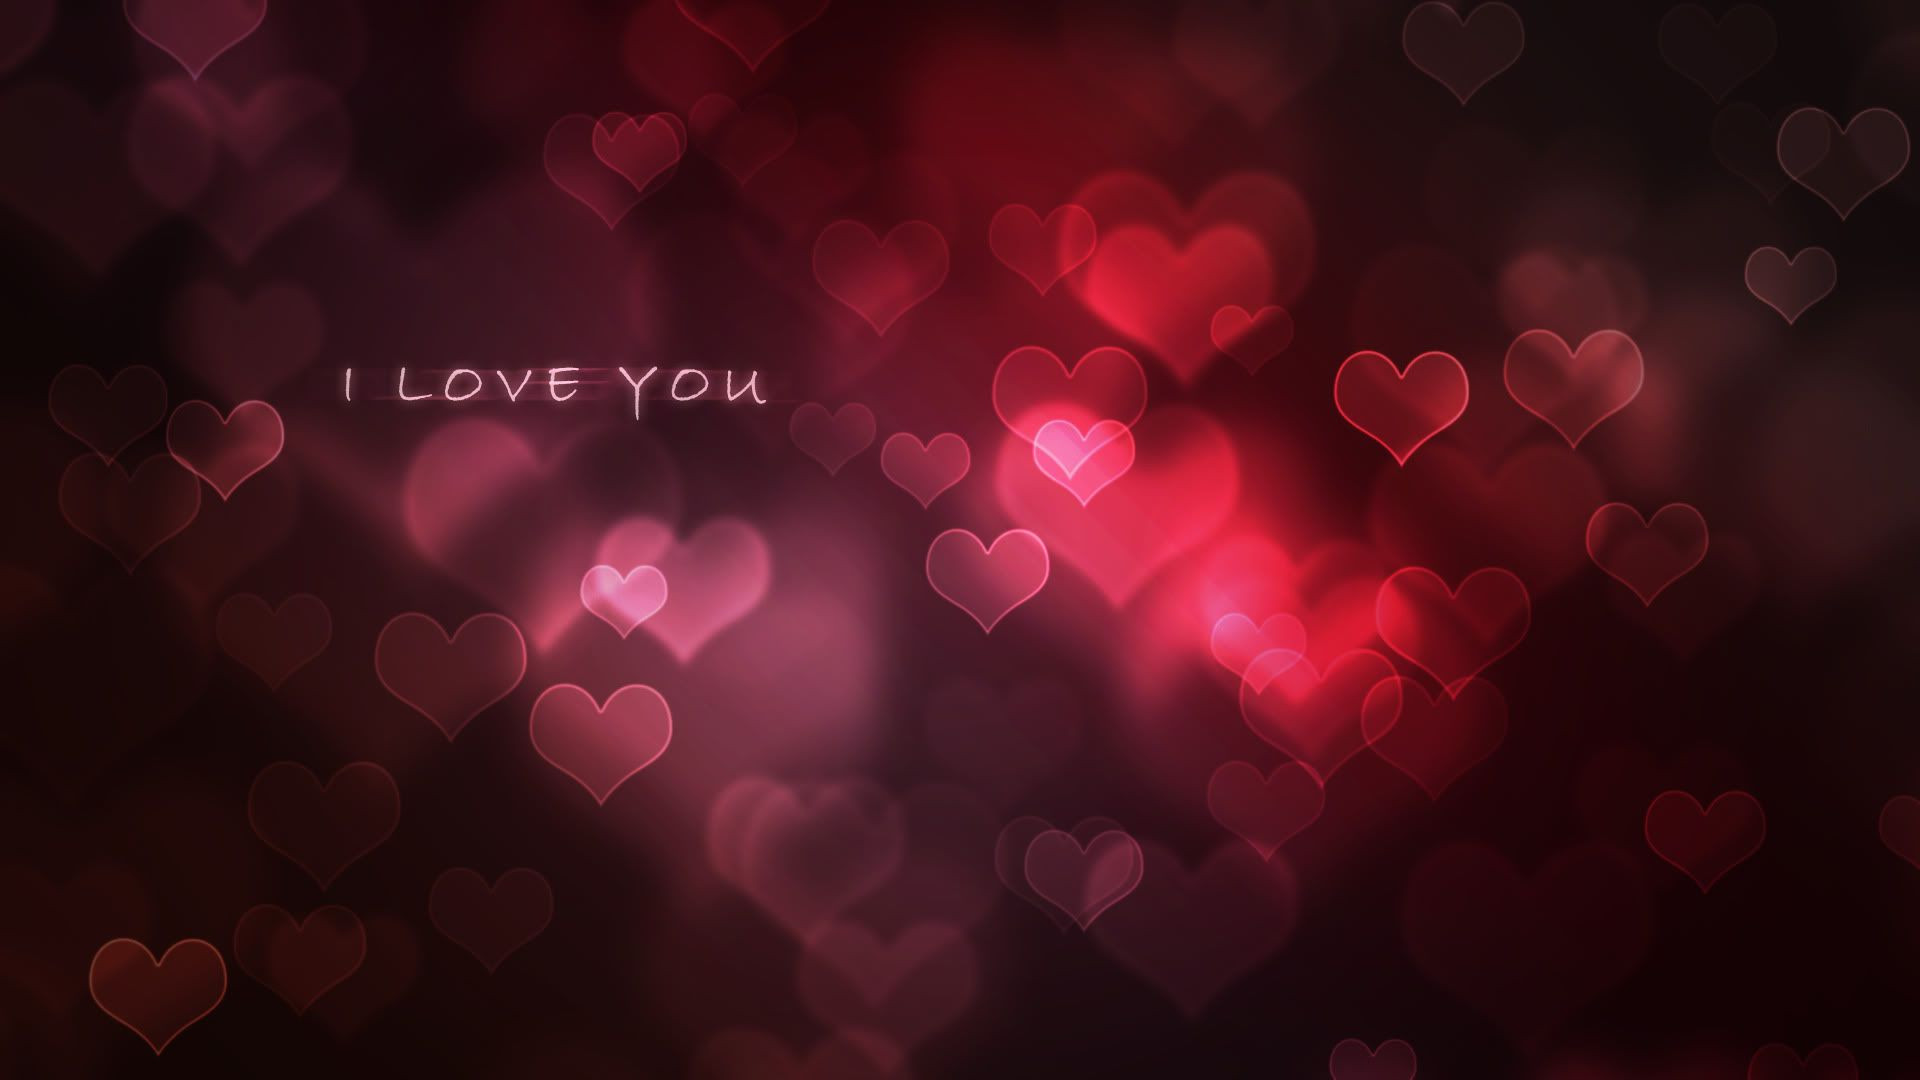 I Love You | Love You Background HD Wallpaper of Love - hdwallpaper2013.com | Just So You Know ...